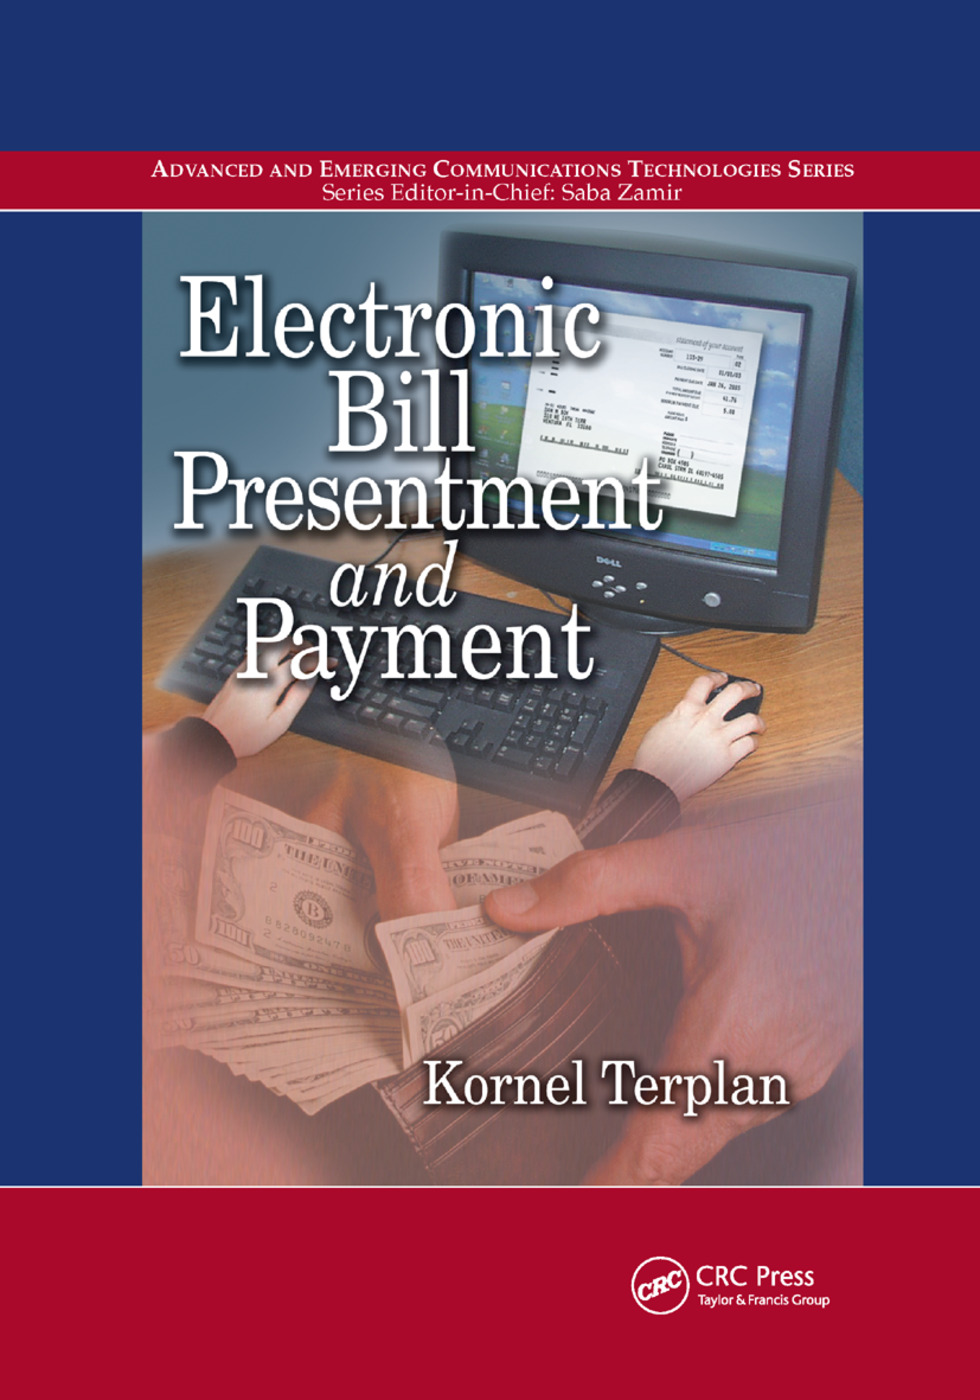 Electronic Bill Presentment and Payment: 1st Edition (Paperback) book cover